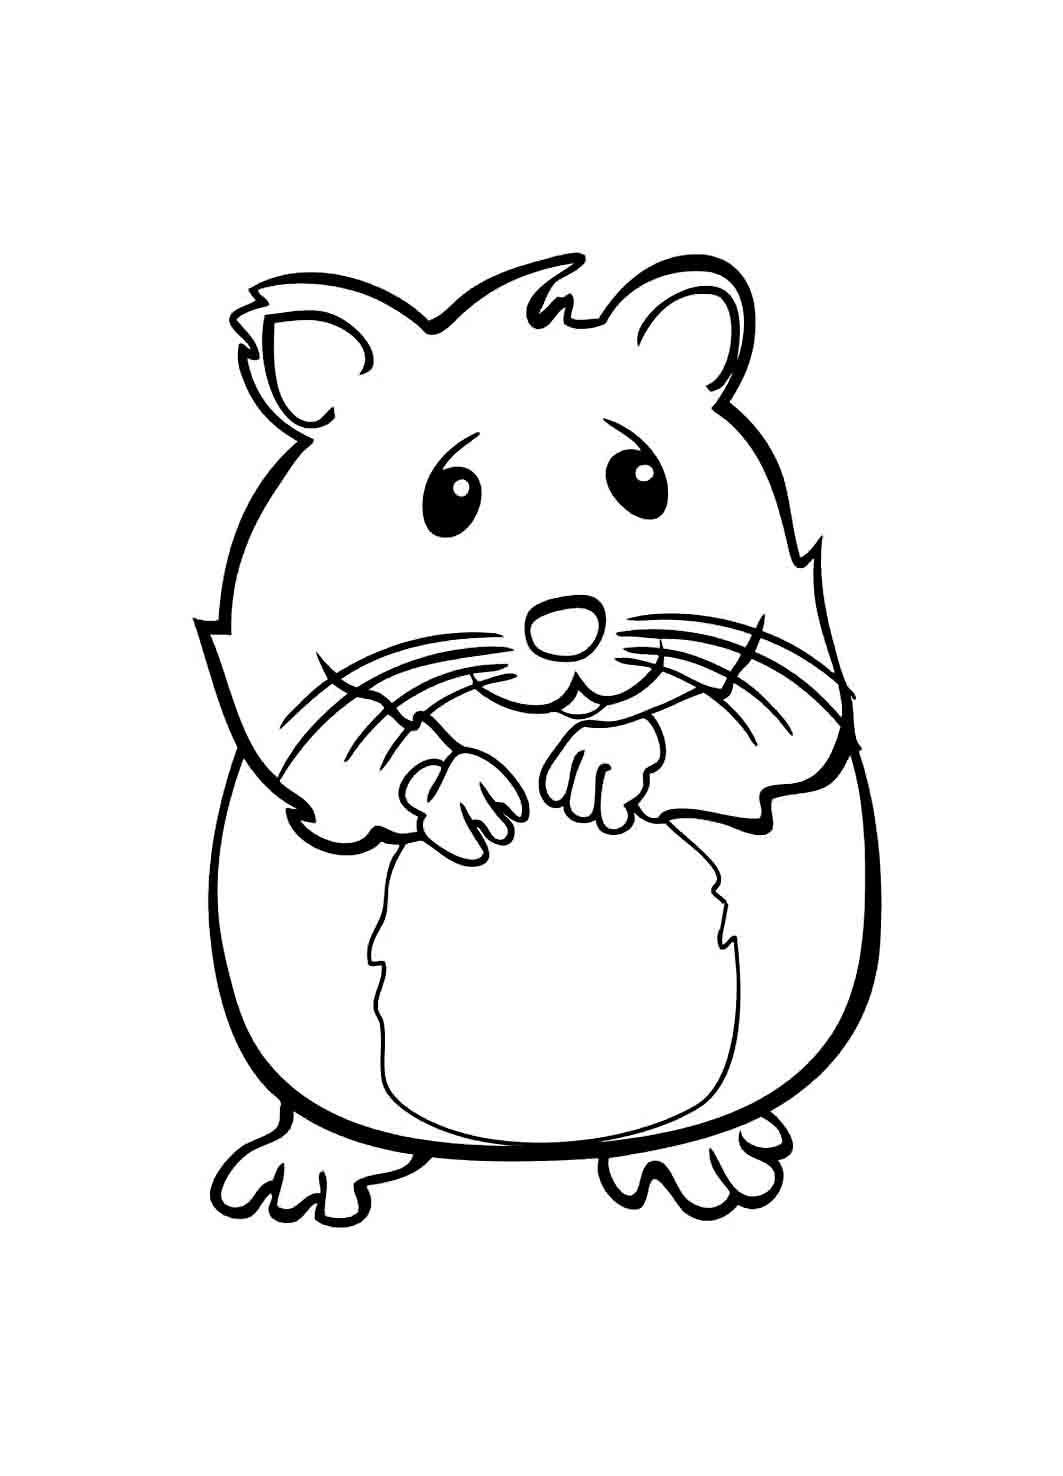 Zhu Pet Coloring Pages 01